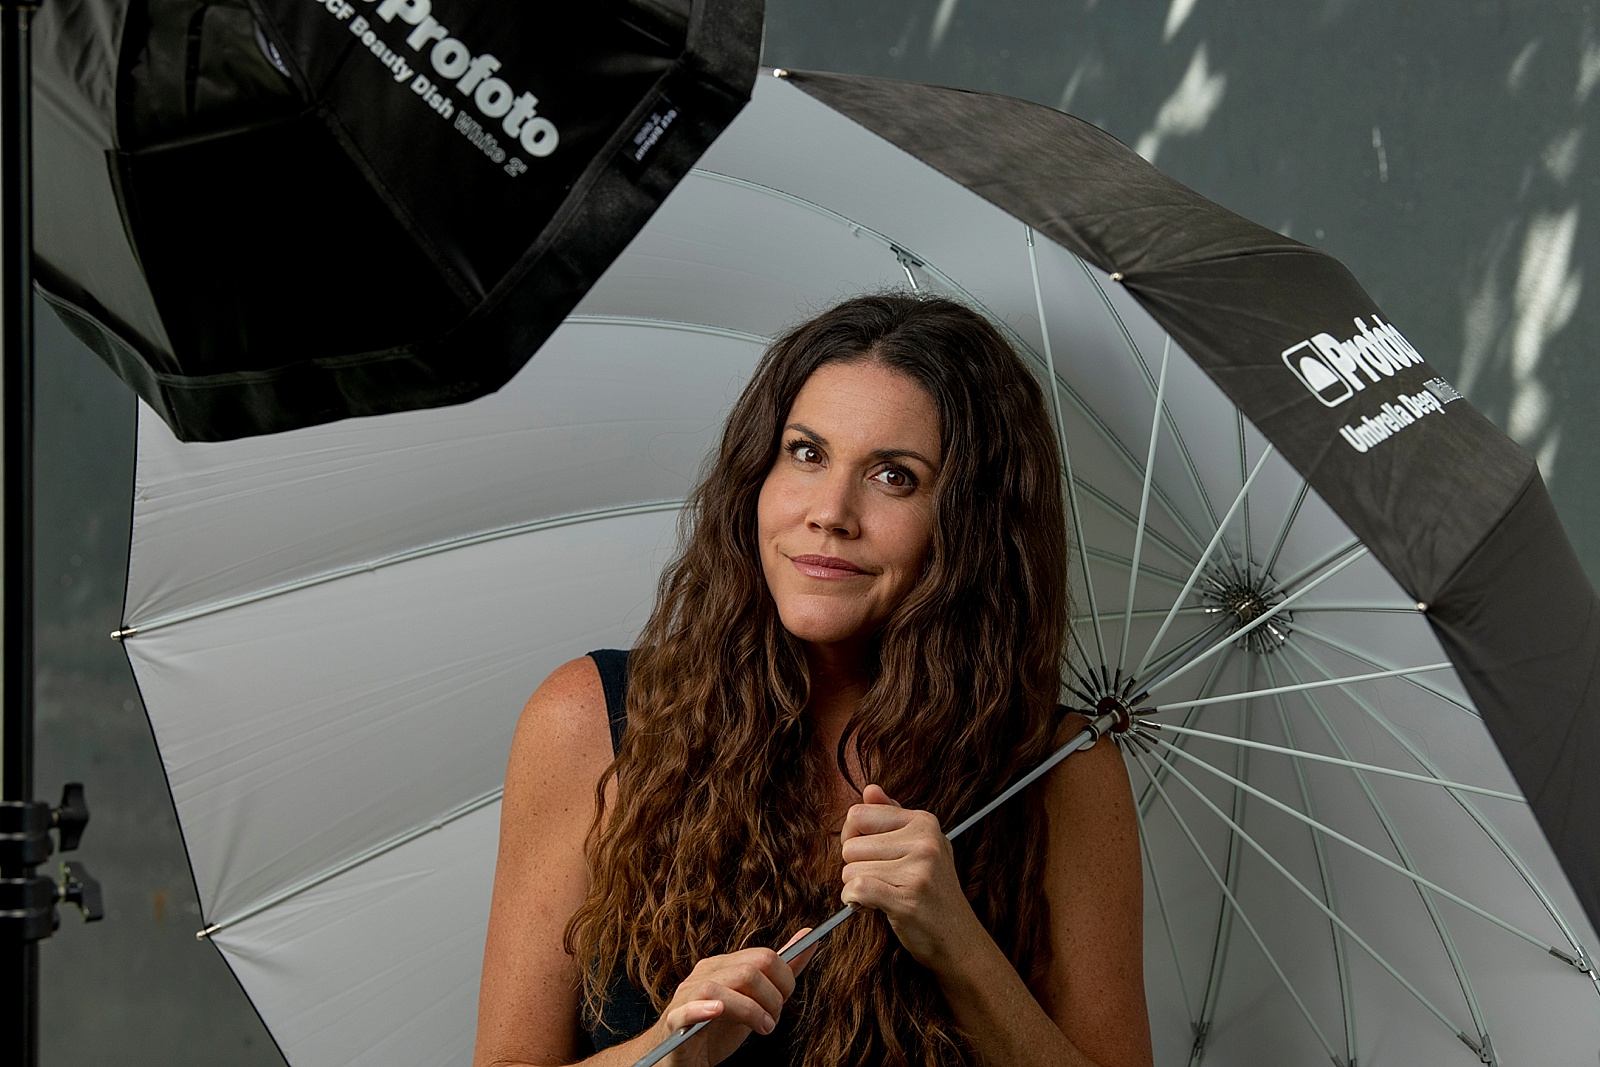 Profoto ambassador- Jacki Bruniquel. Top South African wedding and documentary photographer.